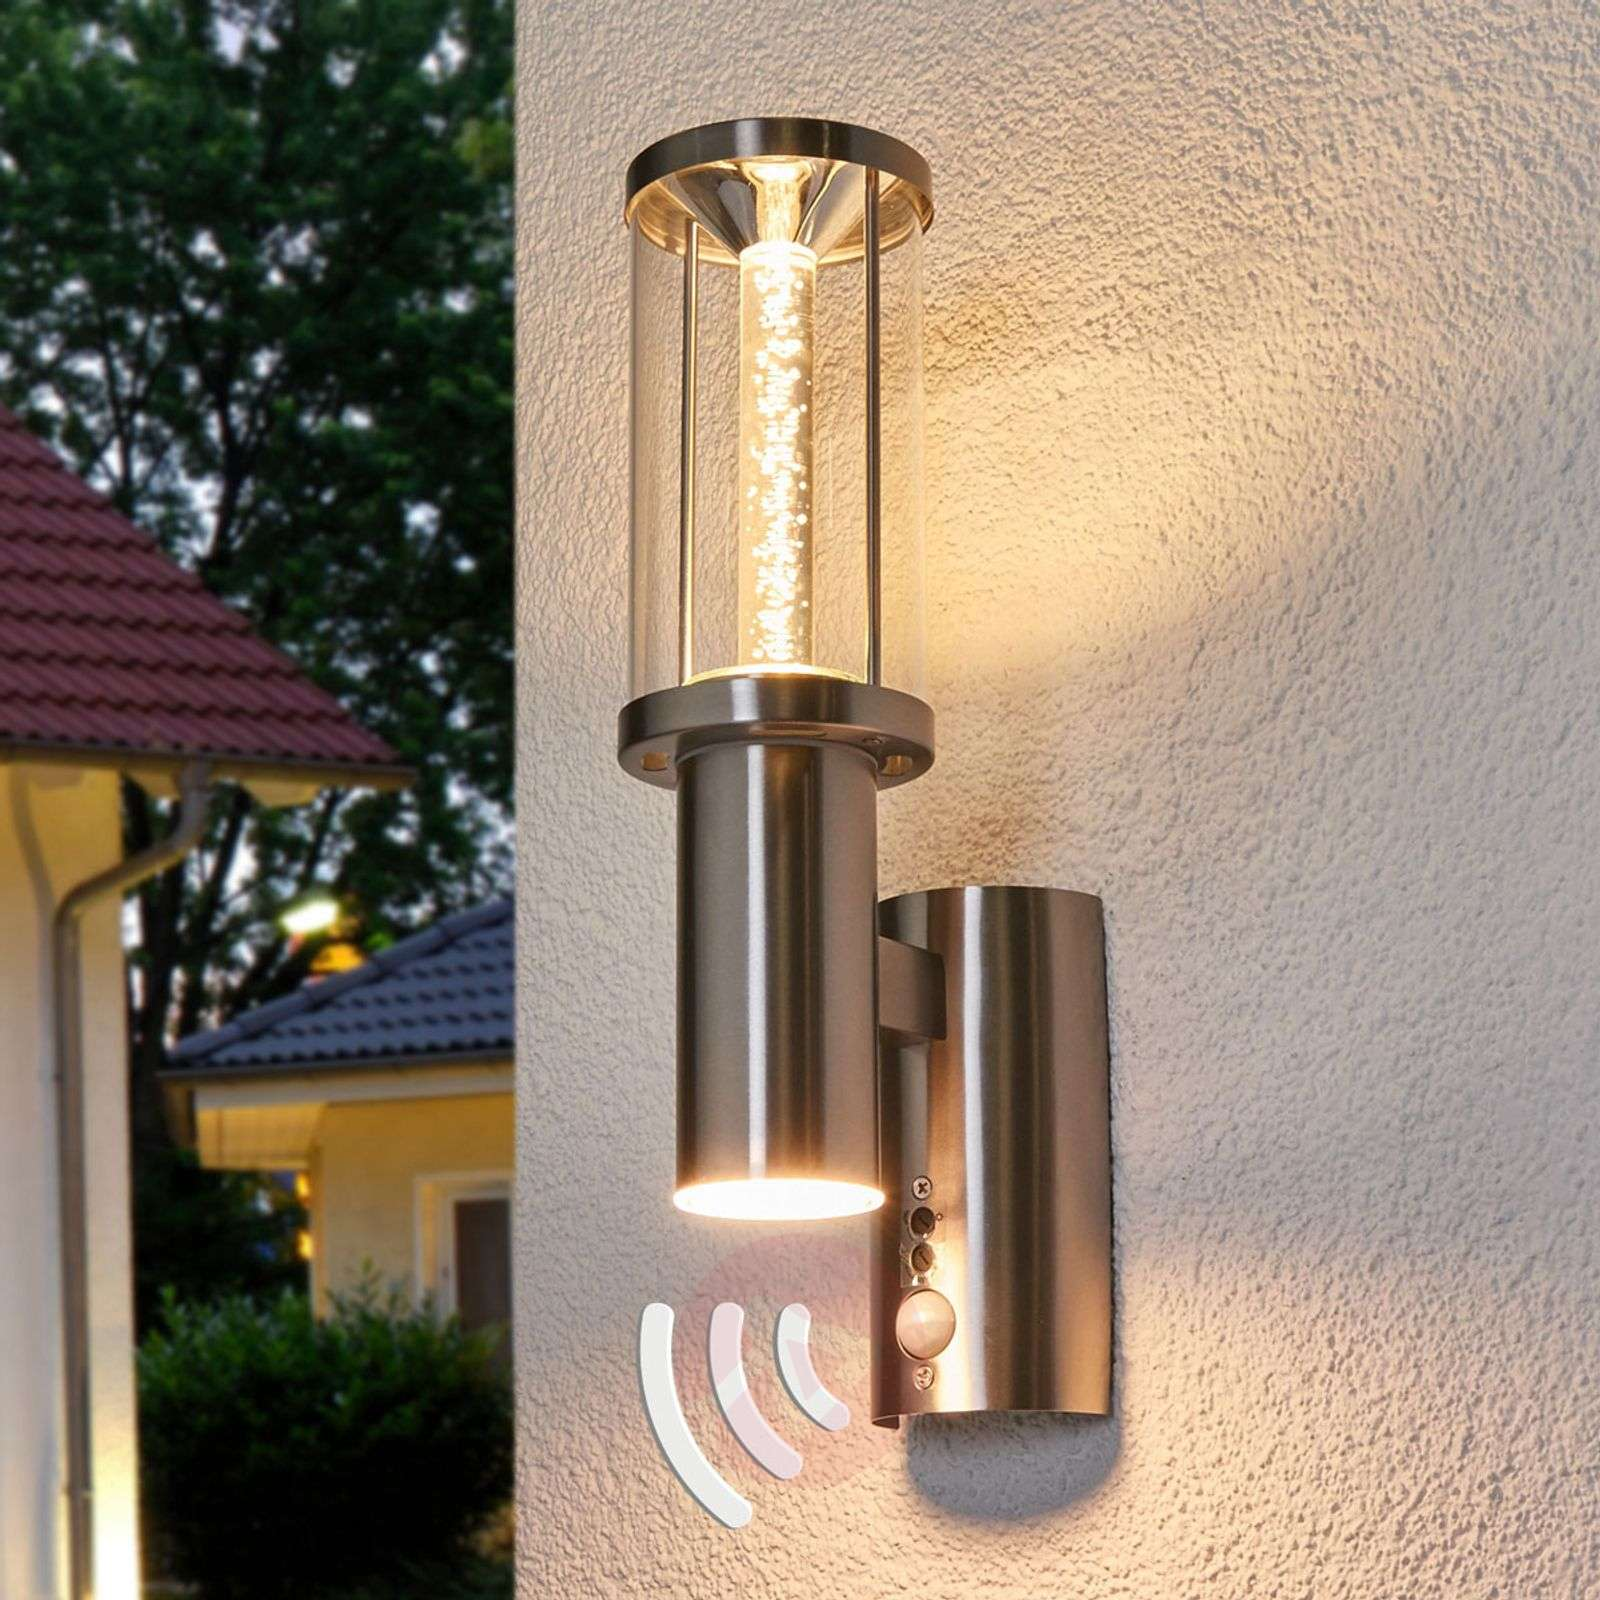 Outdoor Decorative Lights: Decorative LED Outdoor Light Trono Stick With PIR